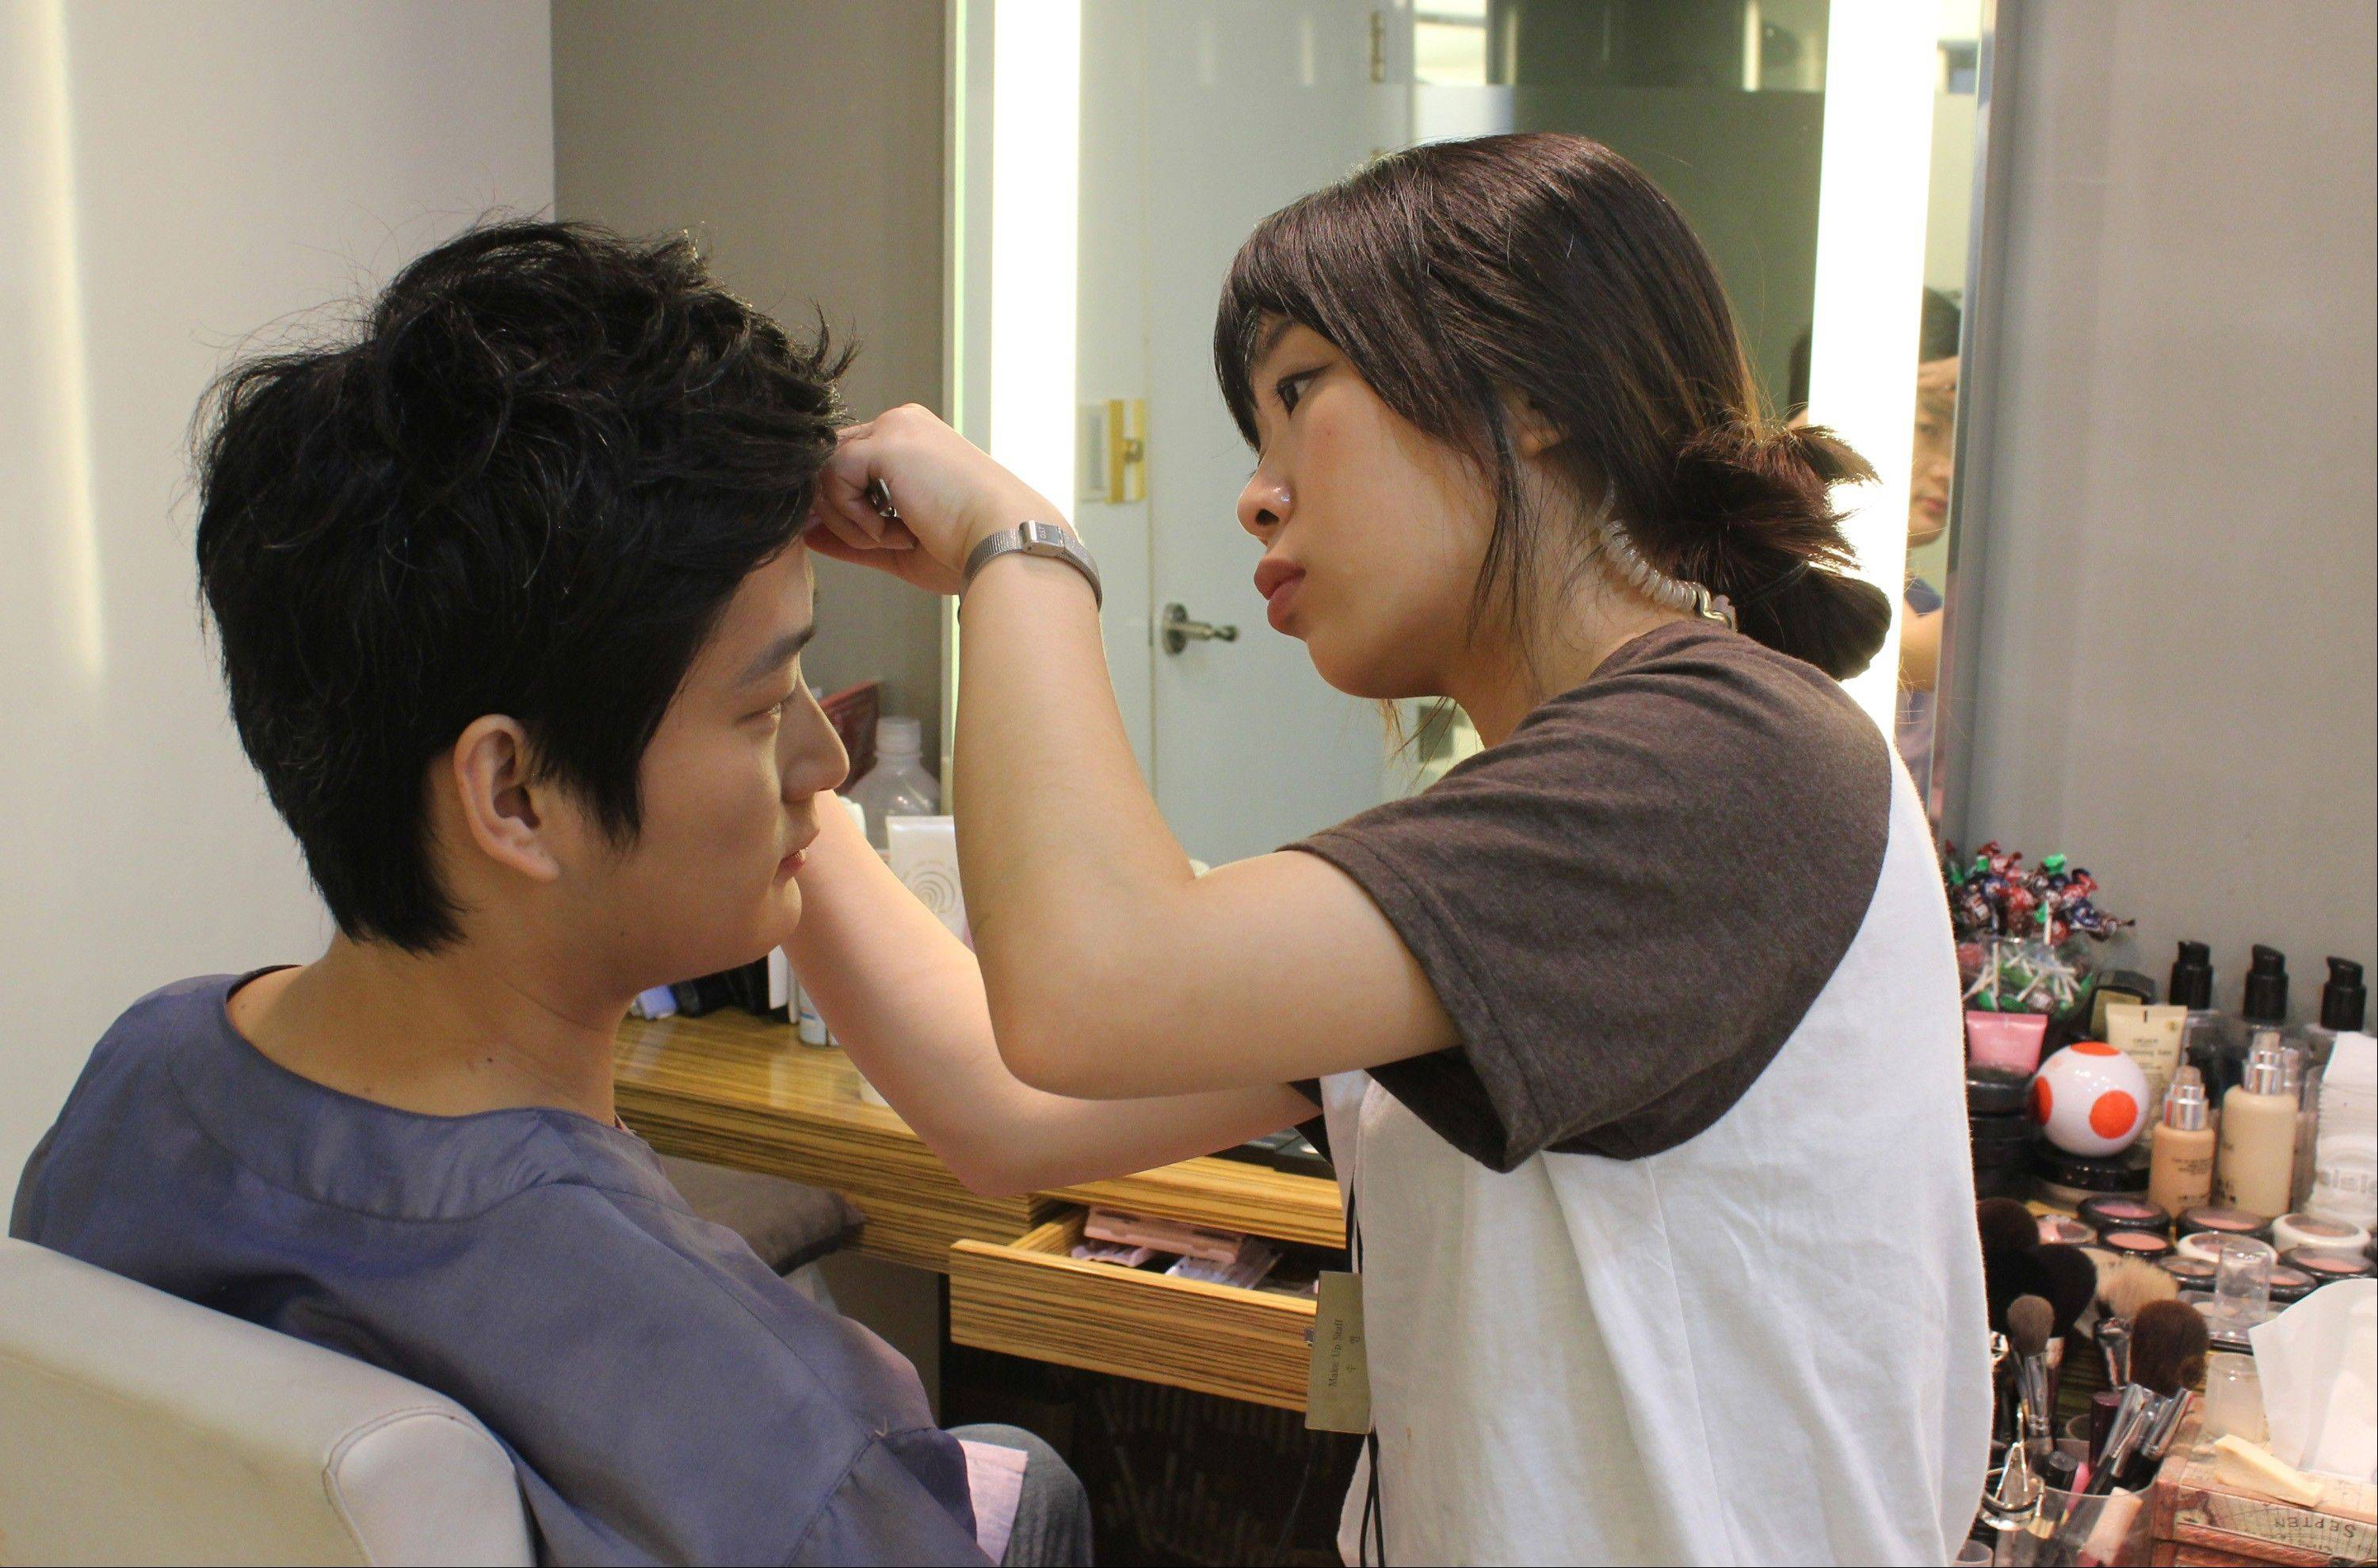 In this July 30, 2013 photo, Chen Jingjing of Beijing, China, tilts his head as a South Korean stylist fills in Chen�s eyebrows with a pencil in southern Seoul, South Korea. China is the source of one quarter of all tourists to South Korea, and a handful of companies in South Koreans $15 billion wedding industry are wooing an image-conscious slice of the Chinese jet set happy to drop several thousand dollars on a wedding album with a South Korean touch.